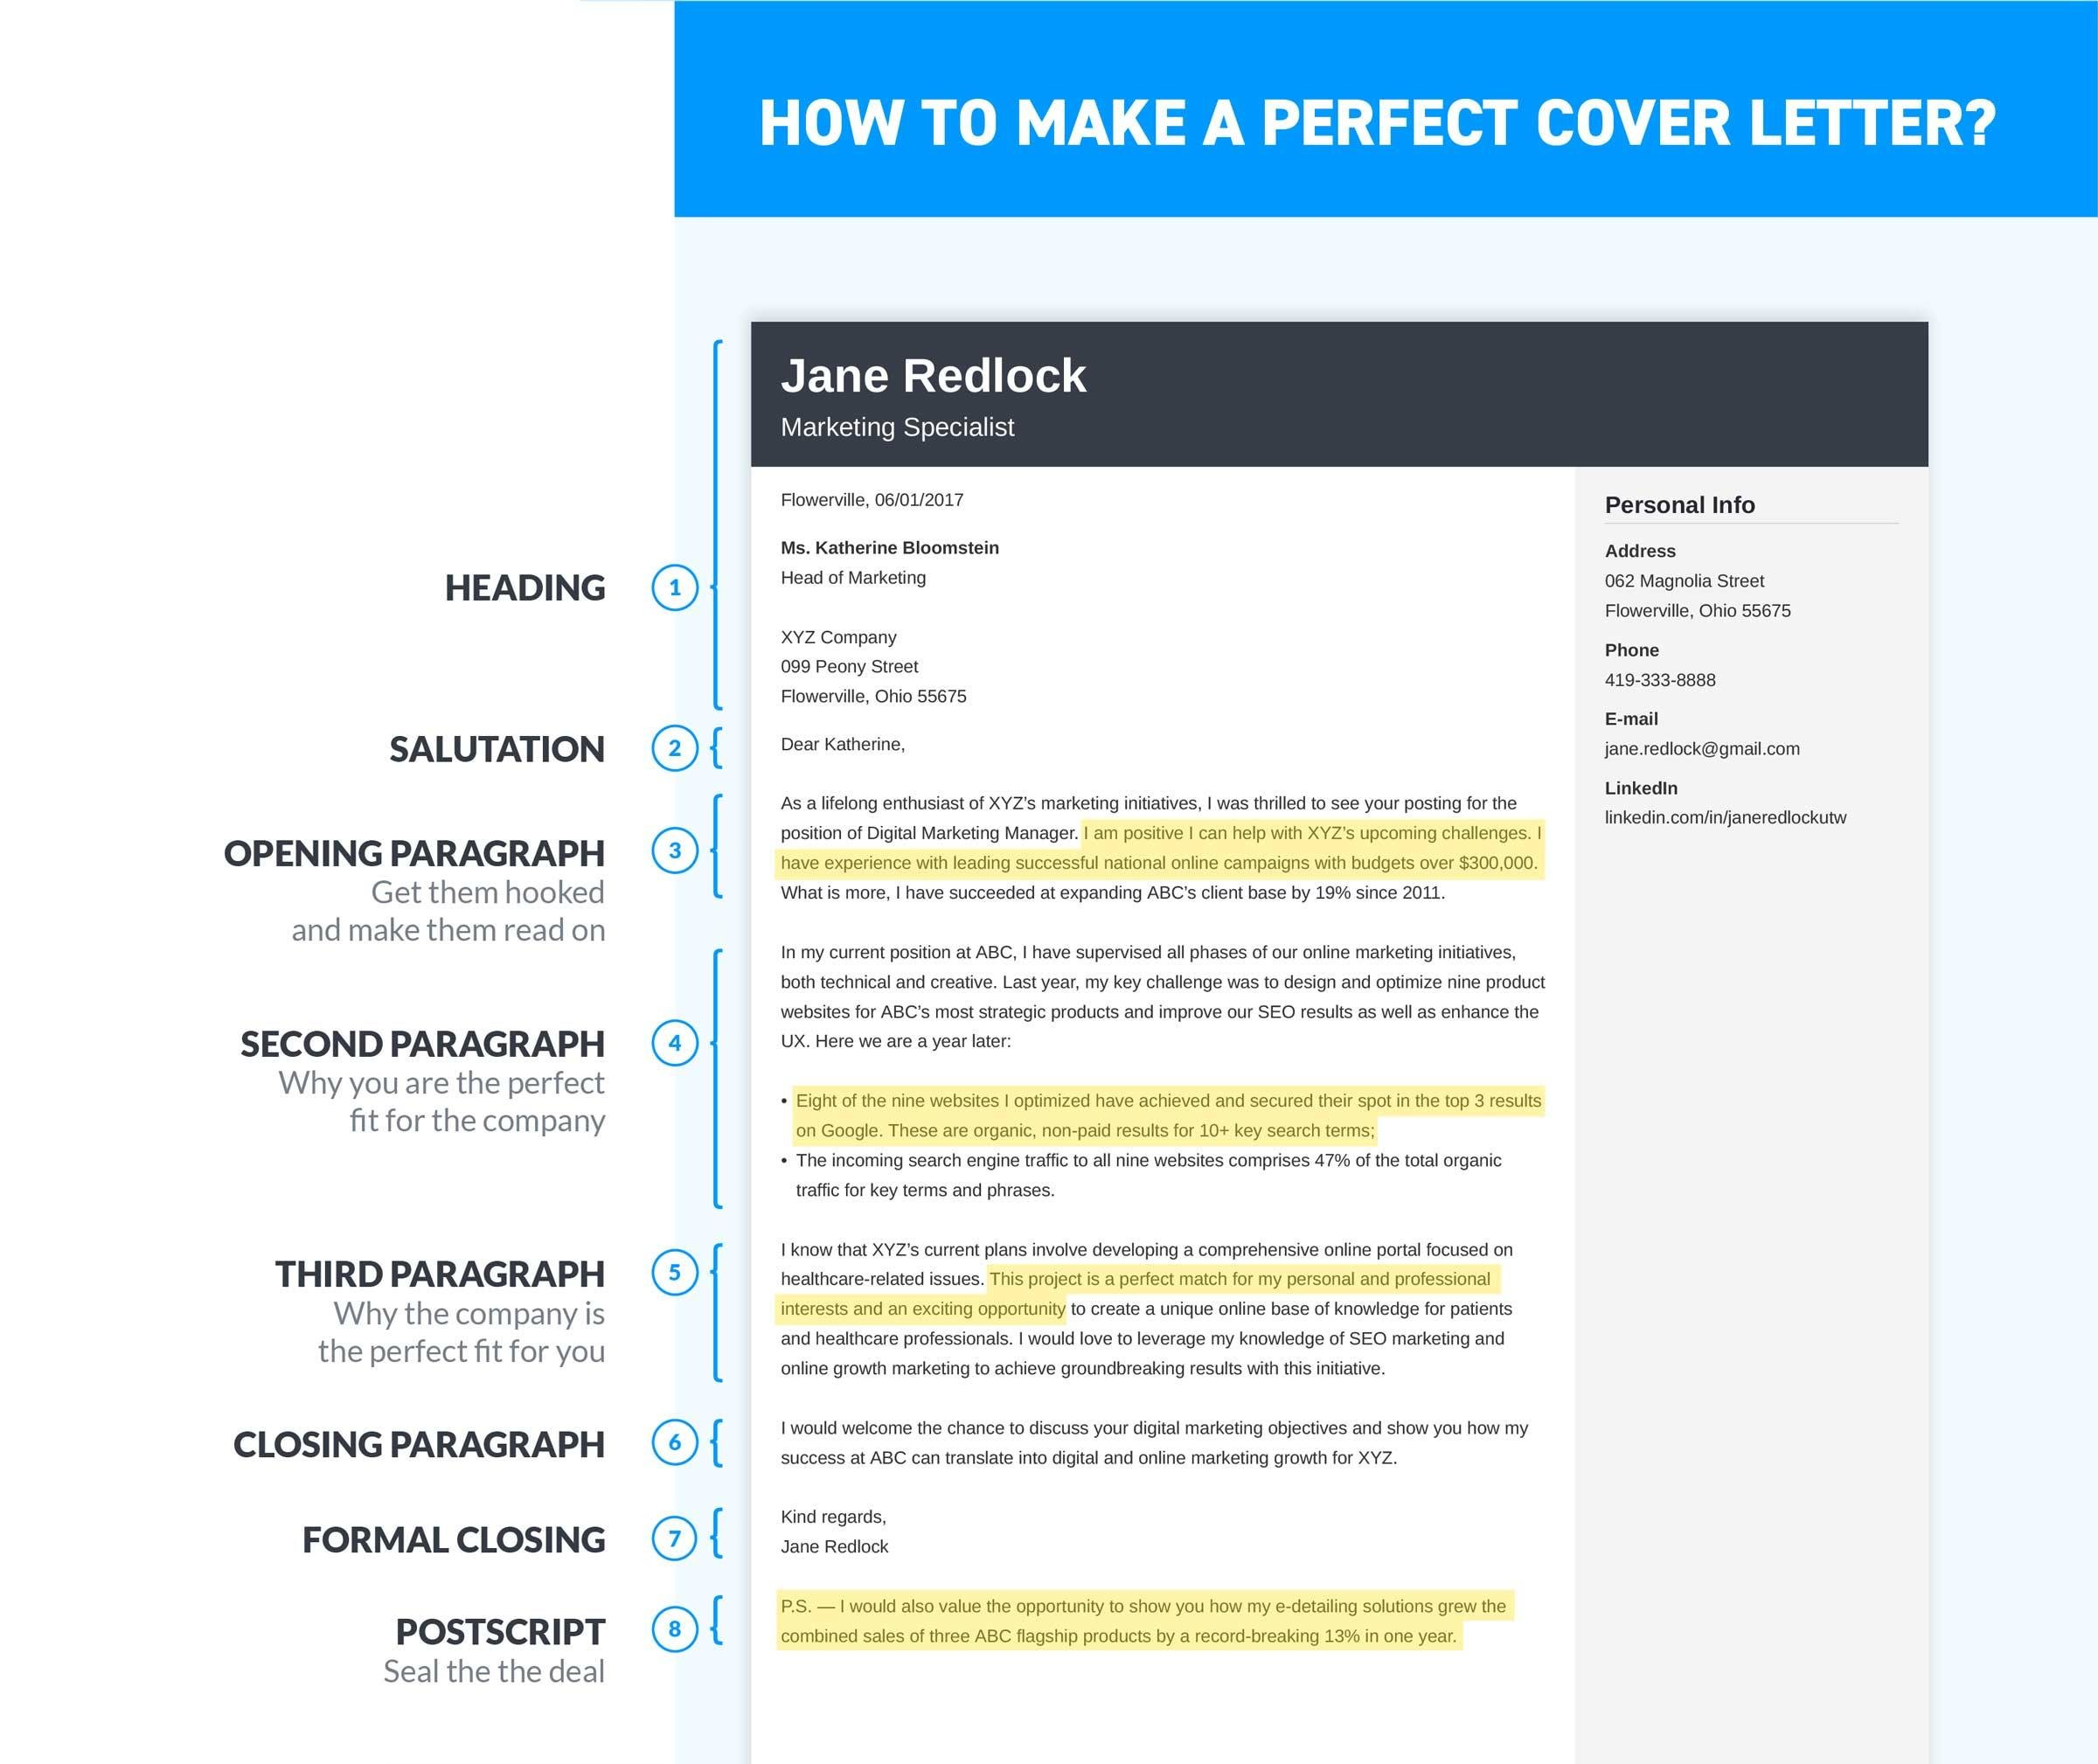 How to write a cover letter in 8 simple steps 12 examples how to make a perfect cover letter infographic expocarfo Images